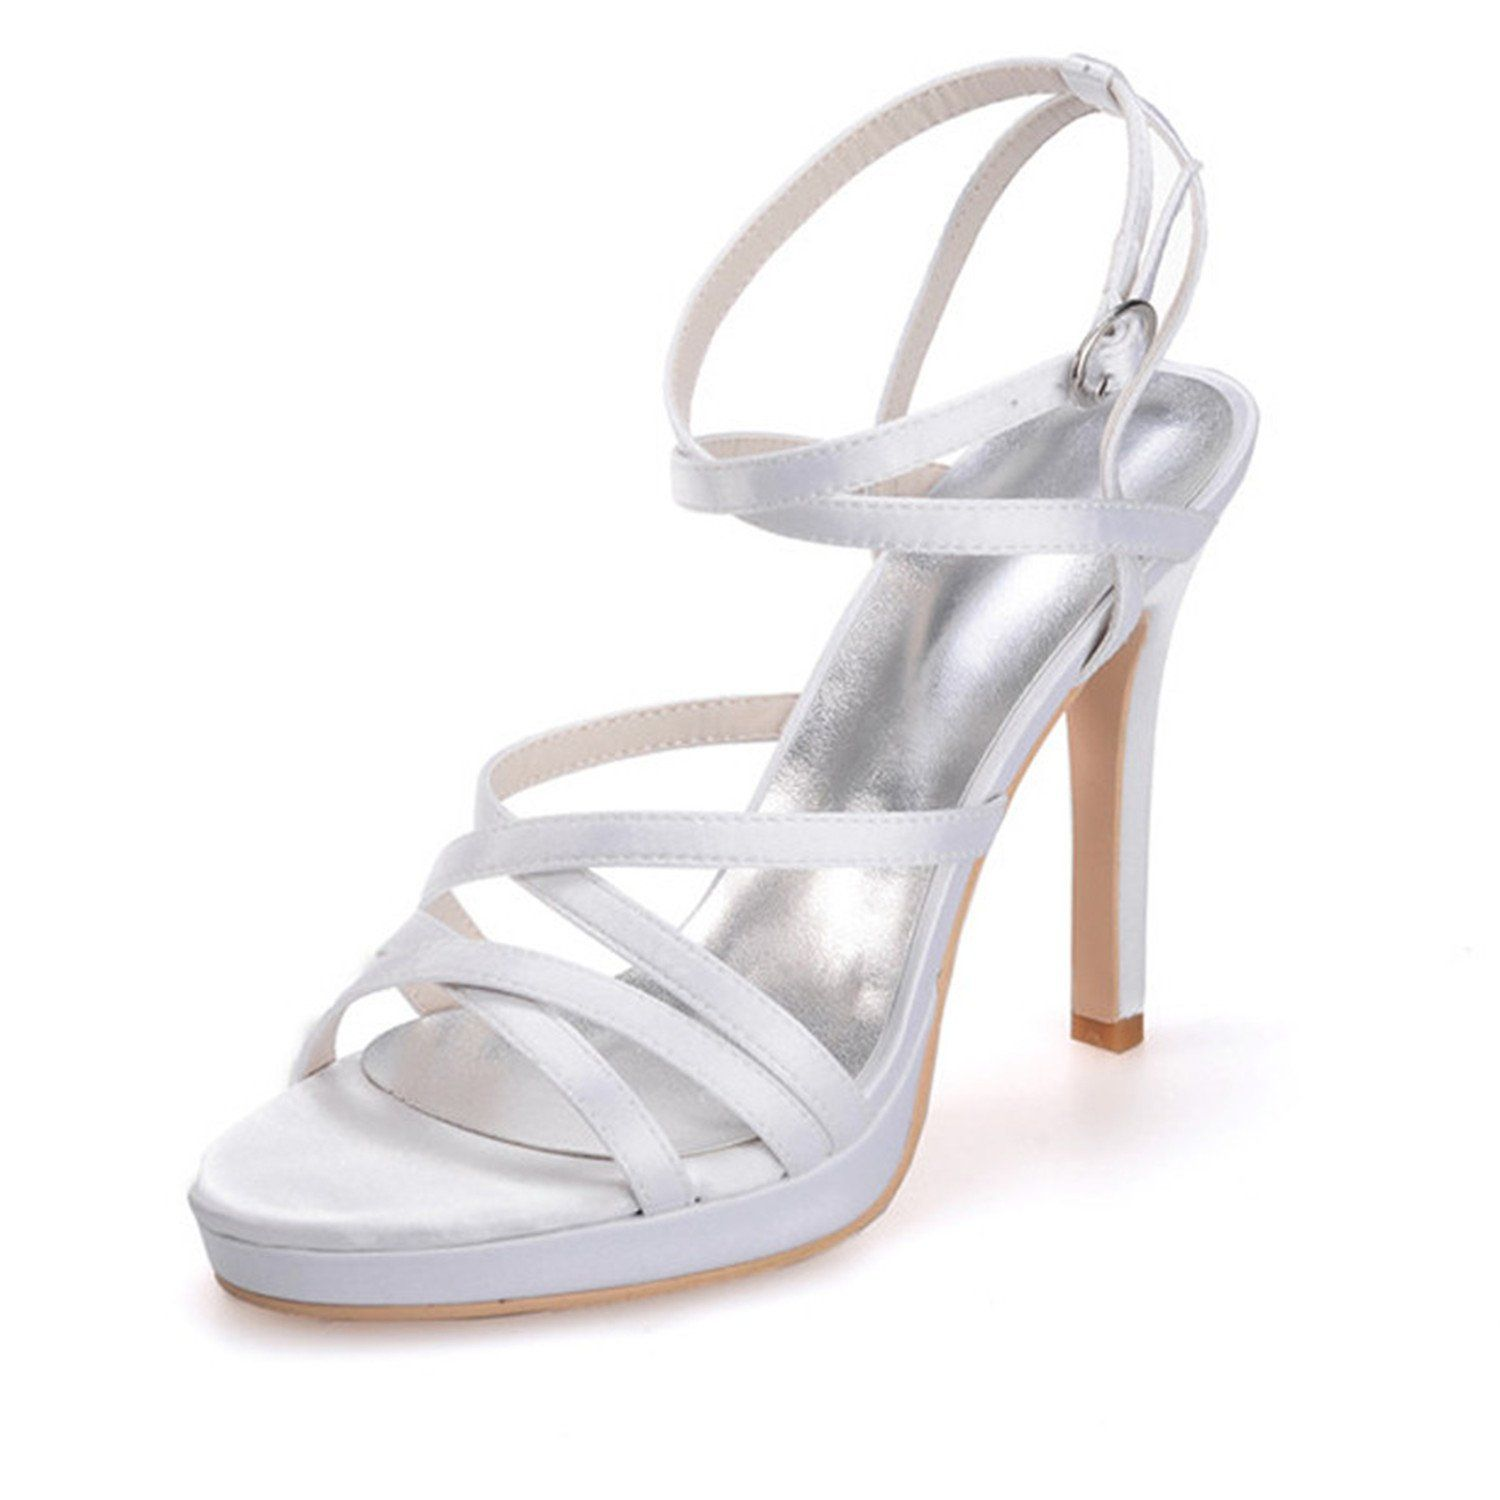 Clearbridal Women's Ivory Evening Party Wedding Shoes ZXF5915-03IV 6.5 B(M) US